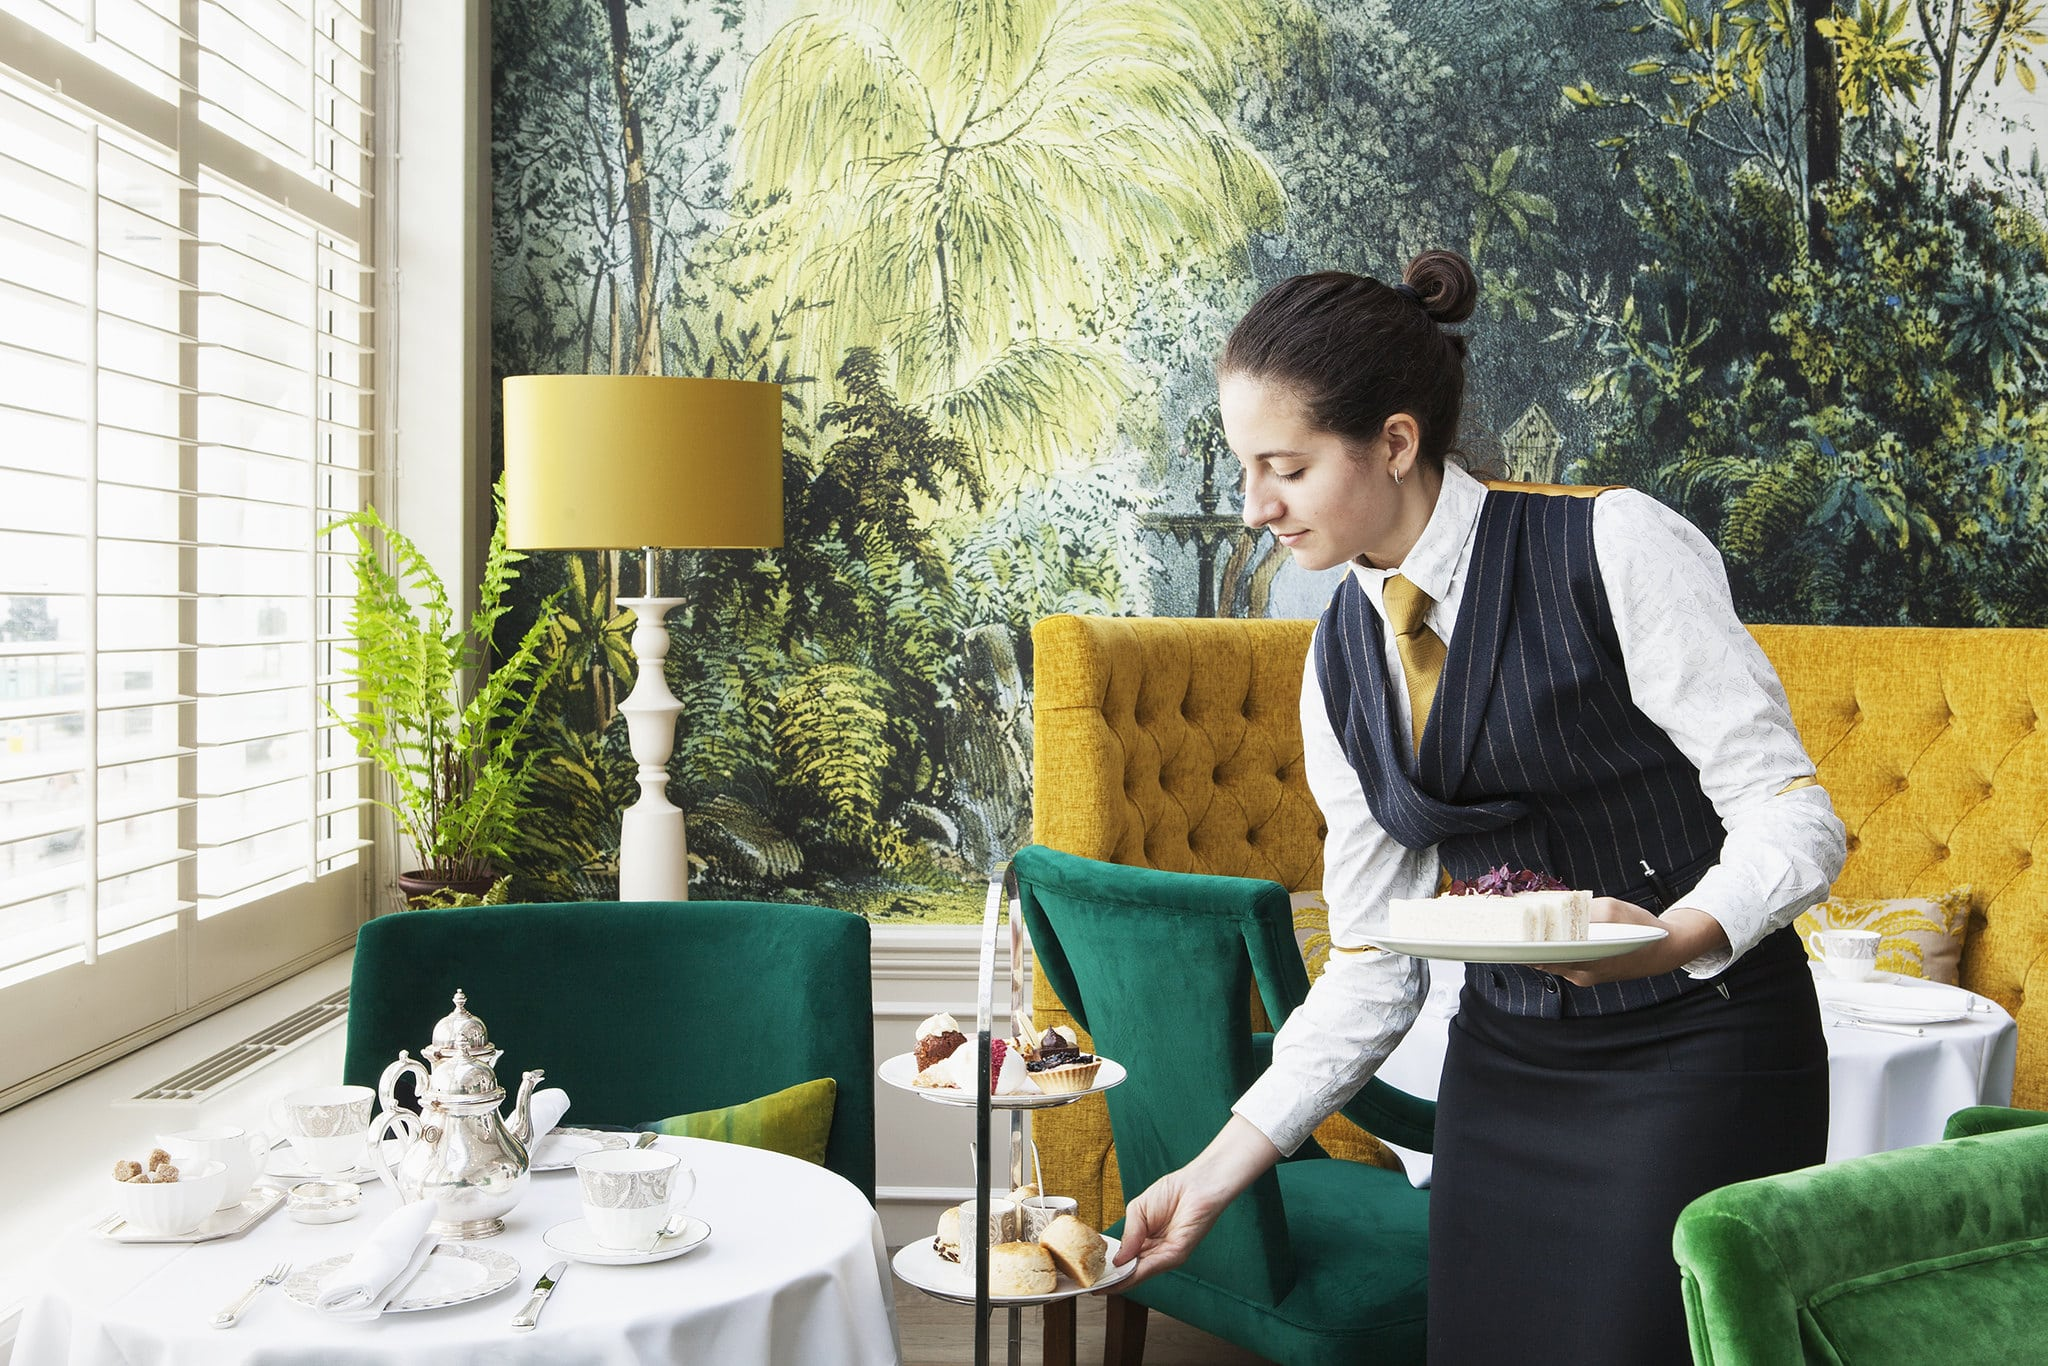 The Grand Lady Waiter